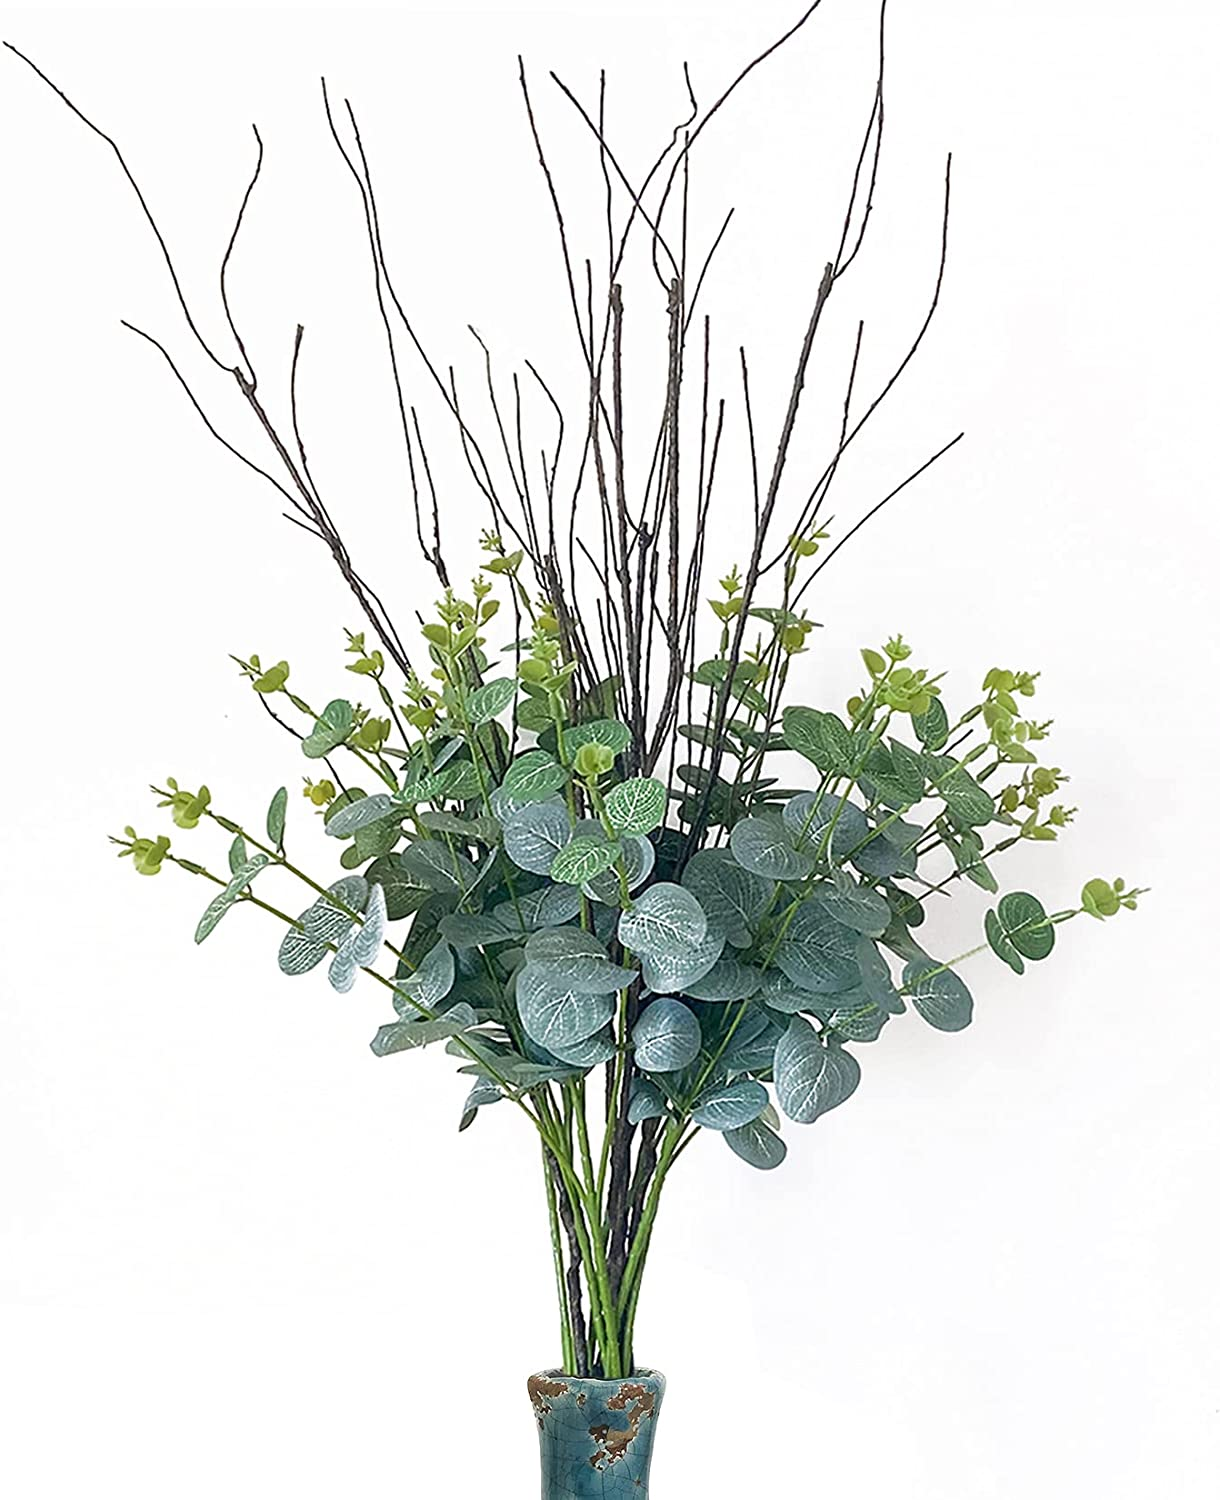 FeiLix 2PCS Eucalyptus Leaves Stems Mixed with 4PCS Branches ,Artificial Greenery Dried Eucalyptus Plant for Vases Party Home Farmhouse Decor